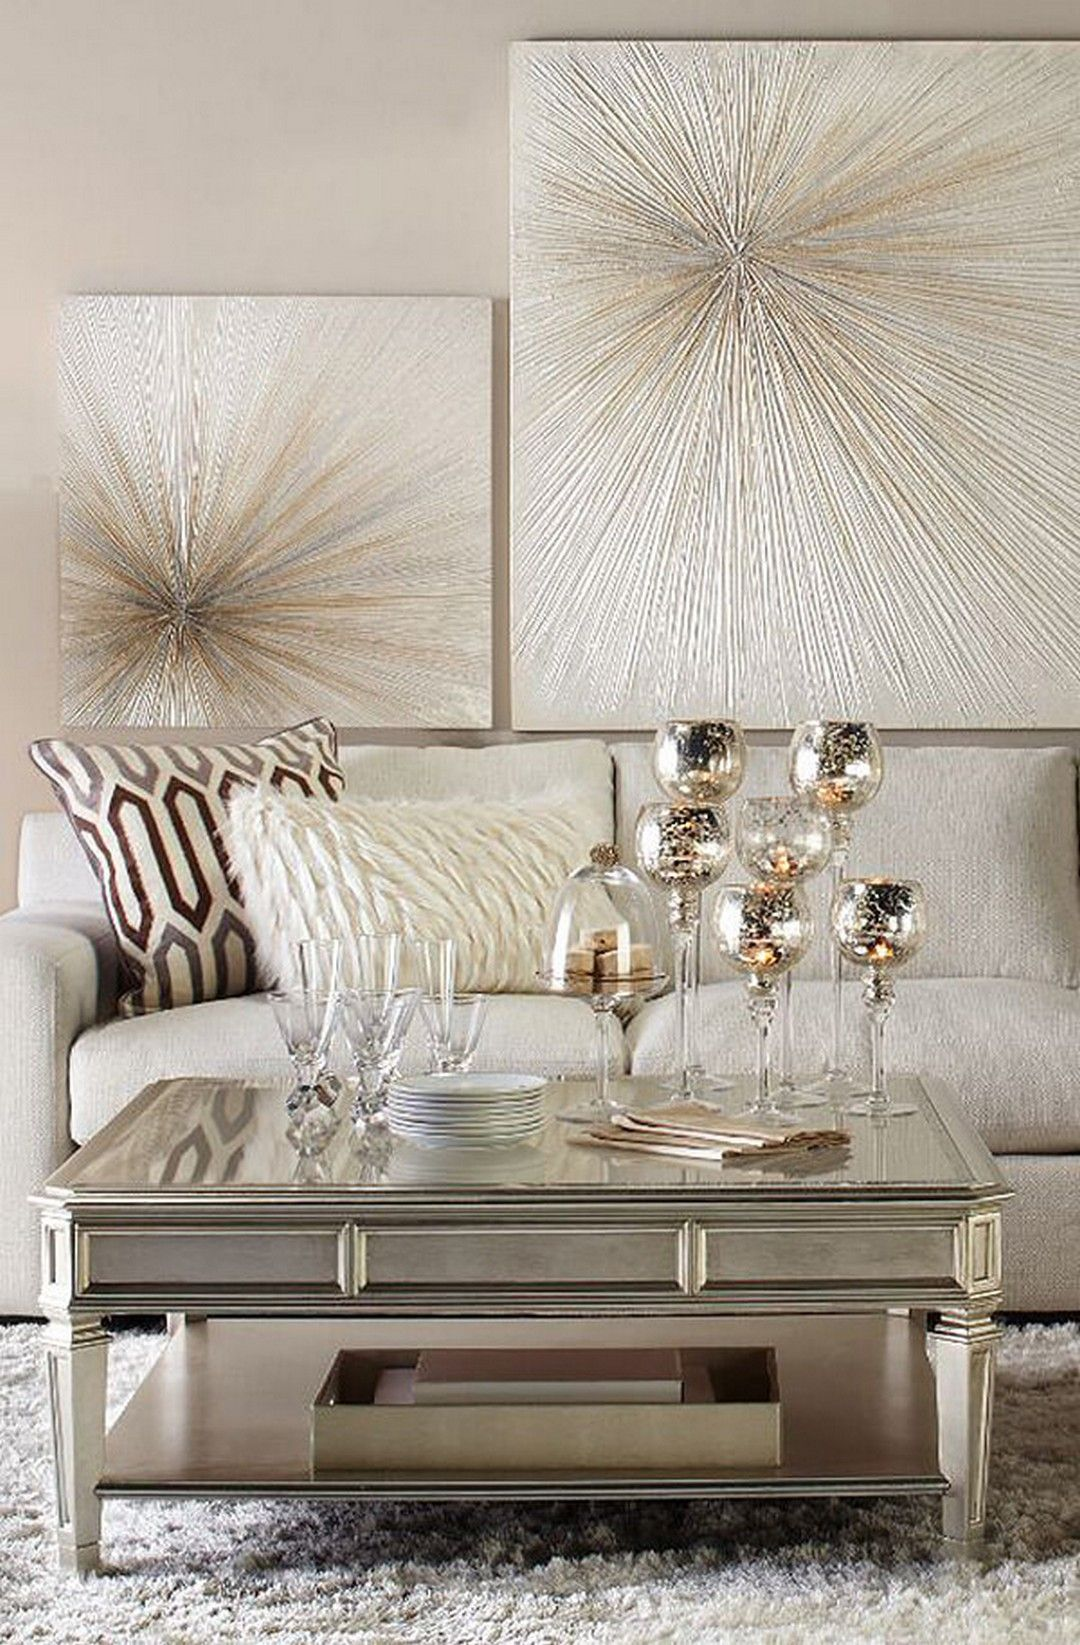 picturesque charming living room curtains ideas | 23 Charming Beige Living Room Design Ideas To Brighten Up ...